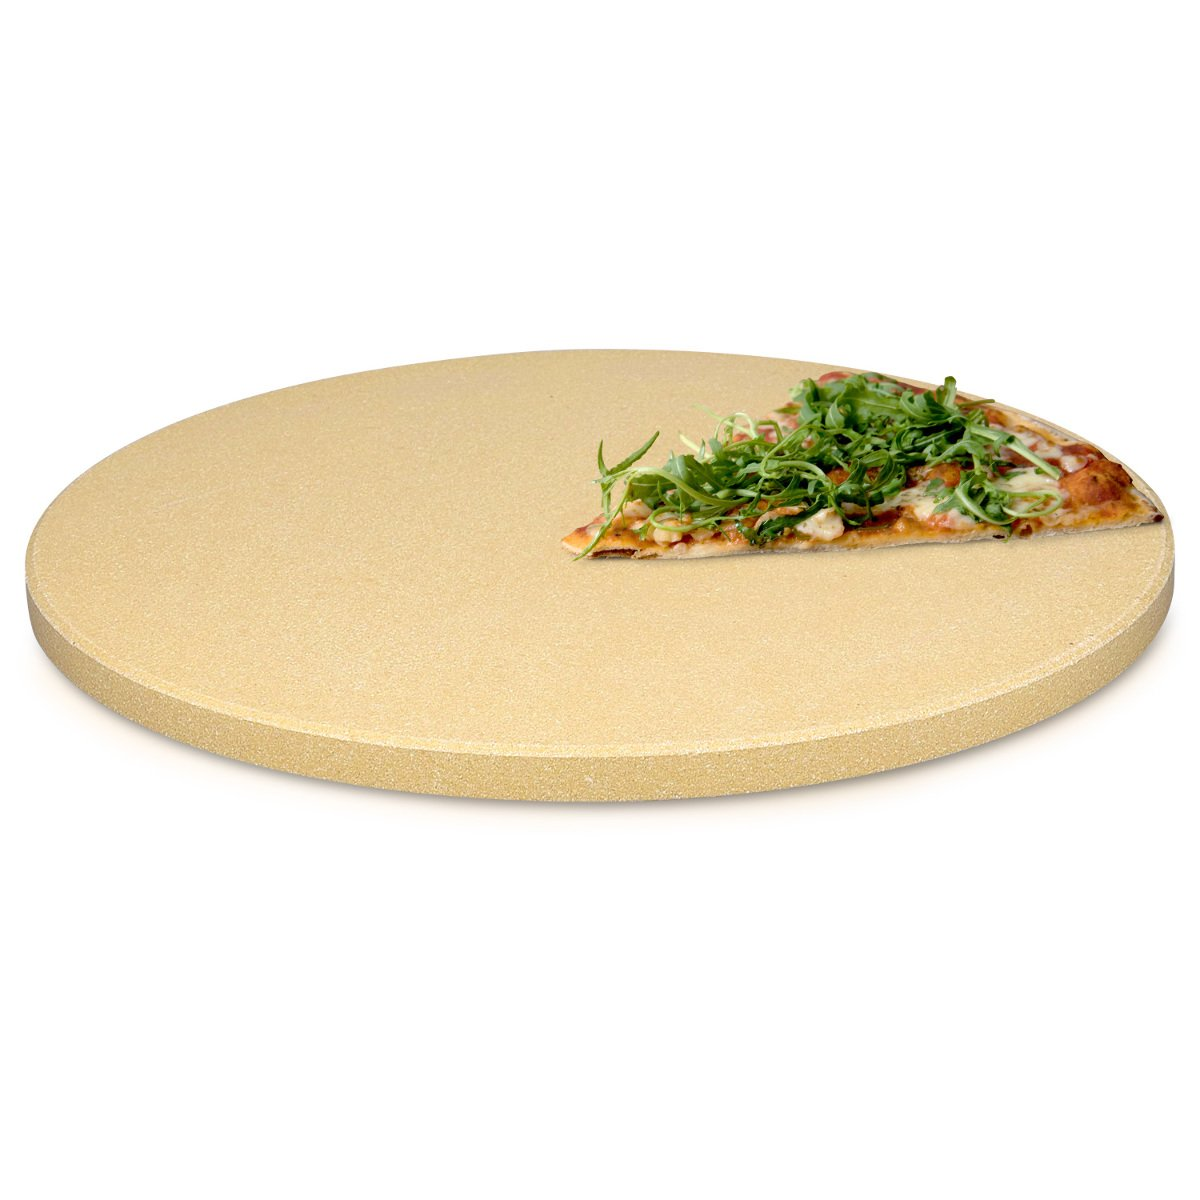 Navaris XL Pizza Stone for Baking - Cordierite Pizza Stone Plate for BBQ Grill Oven - Cook and Serve Pizza Bread Cheese - Round, 30.5x1.5cm